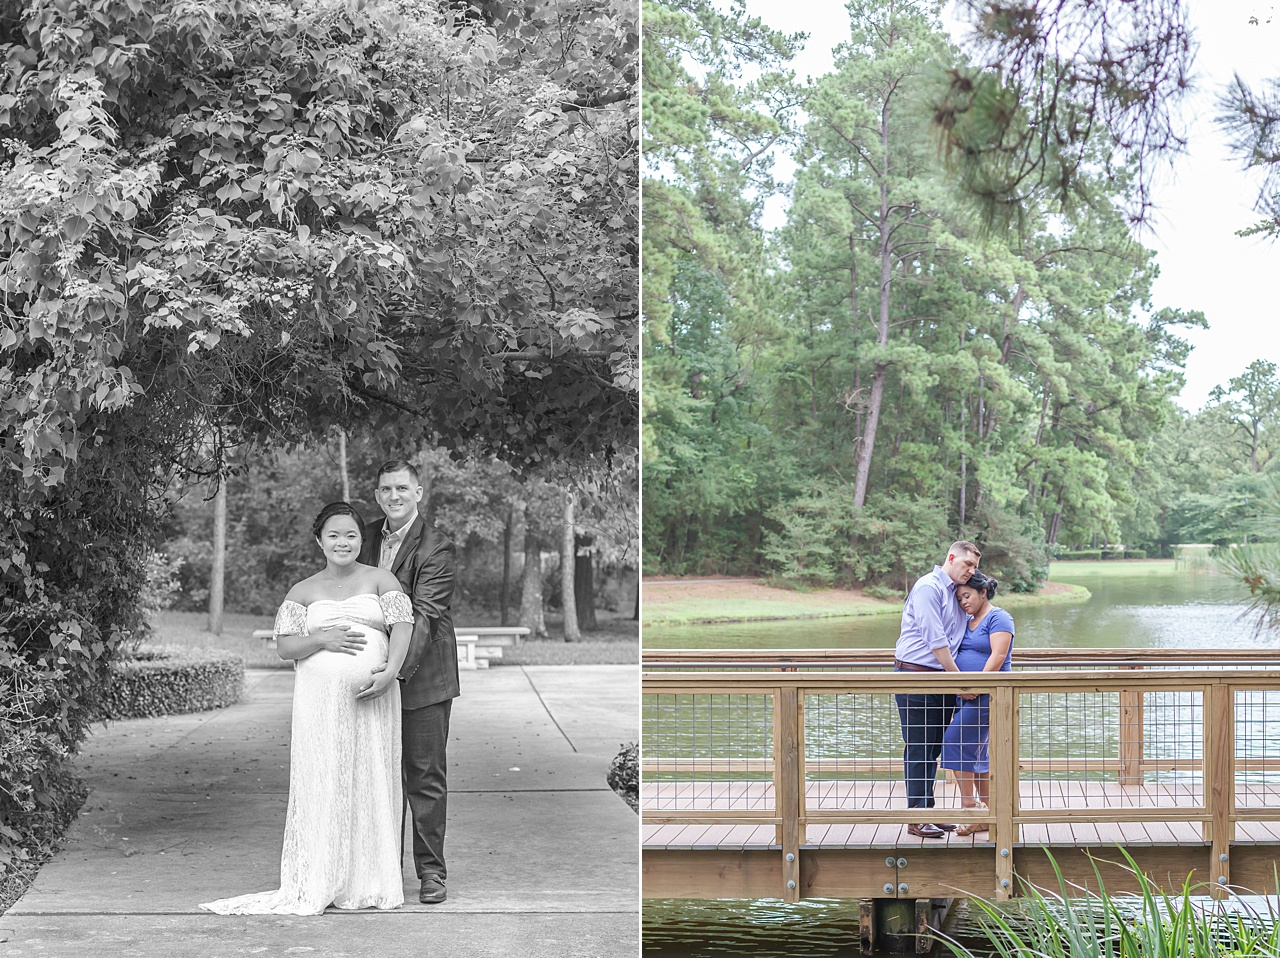 sweet maternity photography session outdoors in the trees the woodlands texas